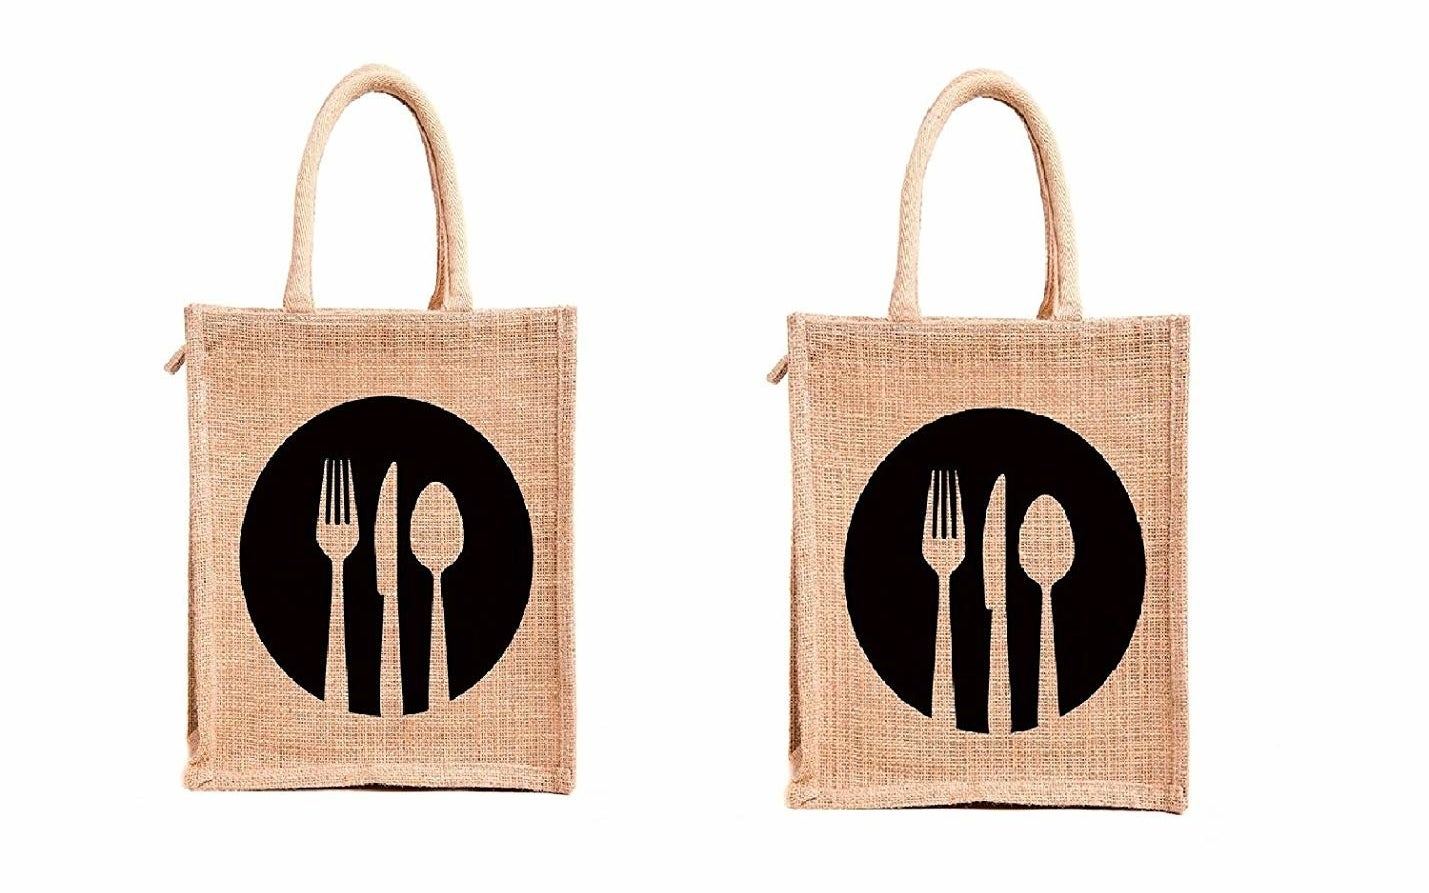 Two jute bags with a black logo on them